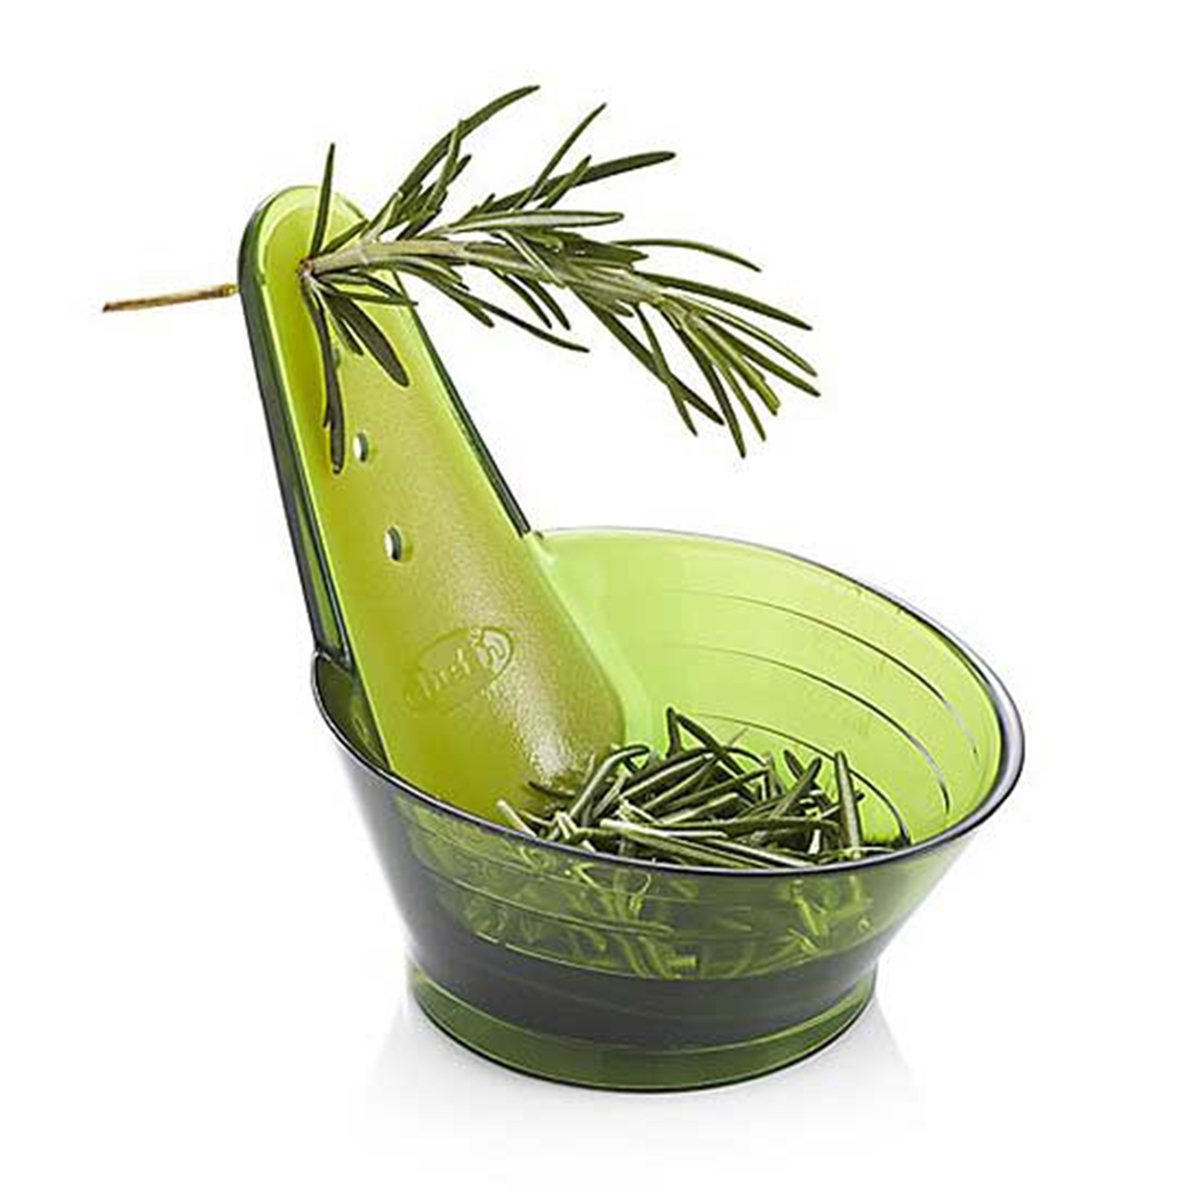 Kitchen gadget that strips herb leaves from the stem photo